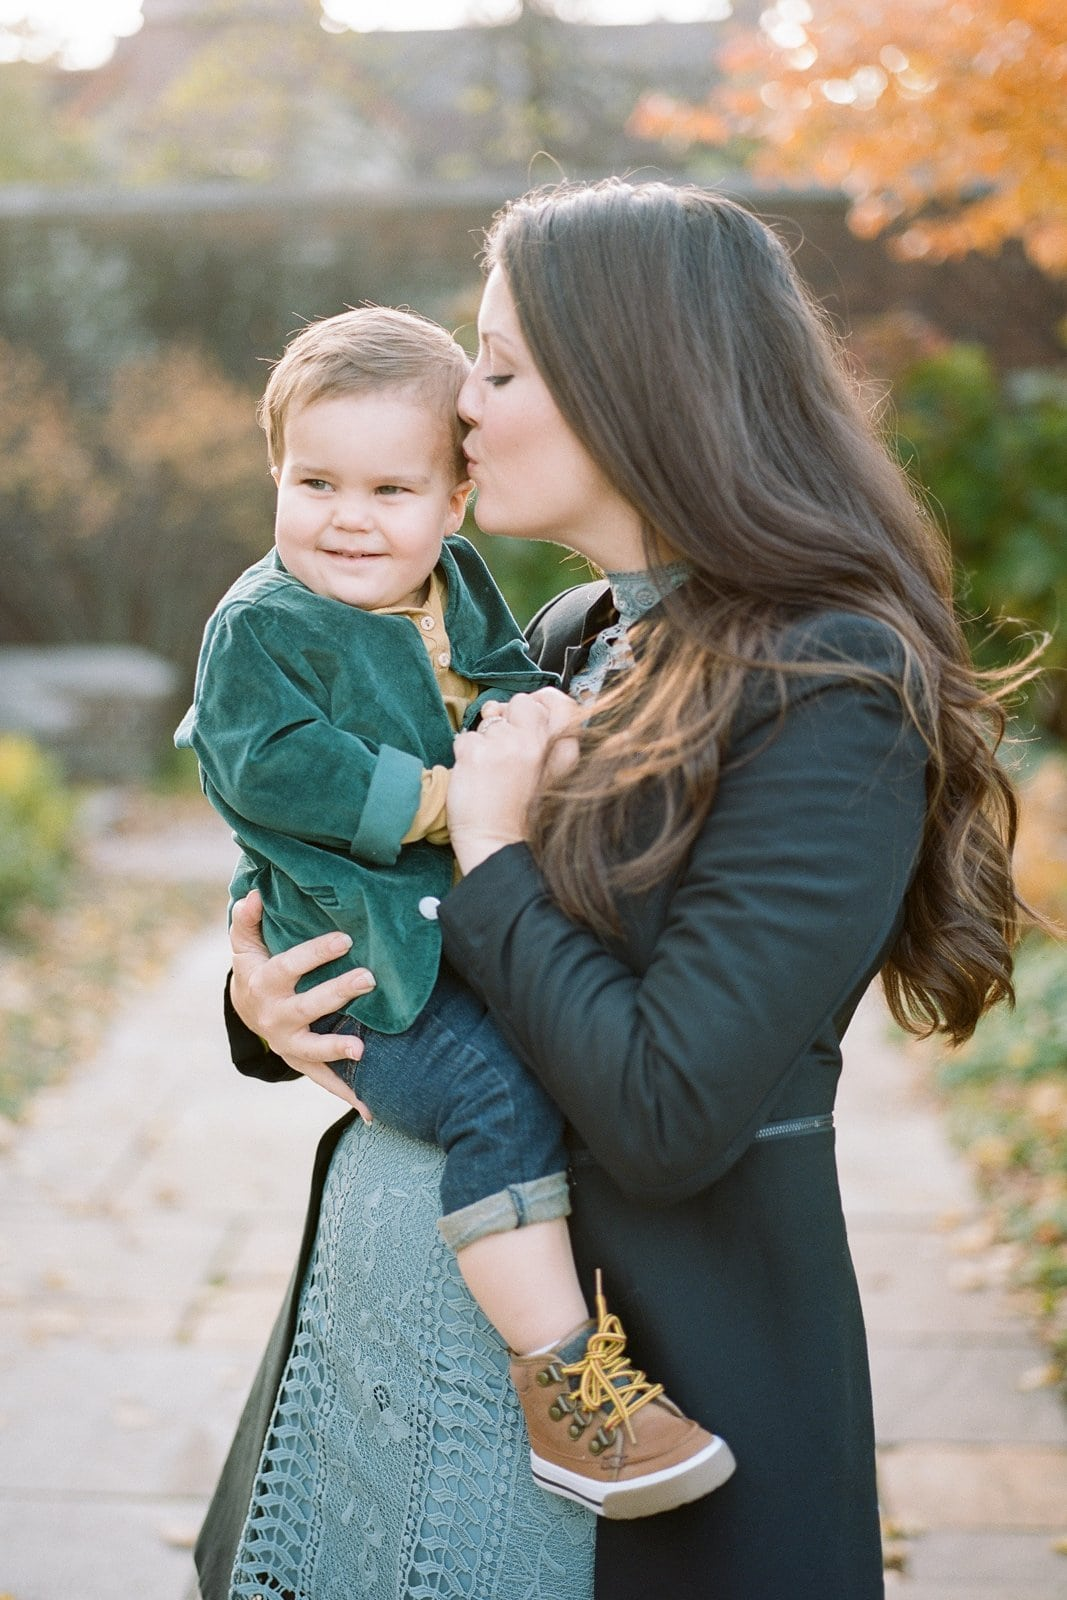 Mom kissing her young son on the head during portraits